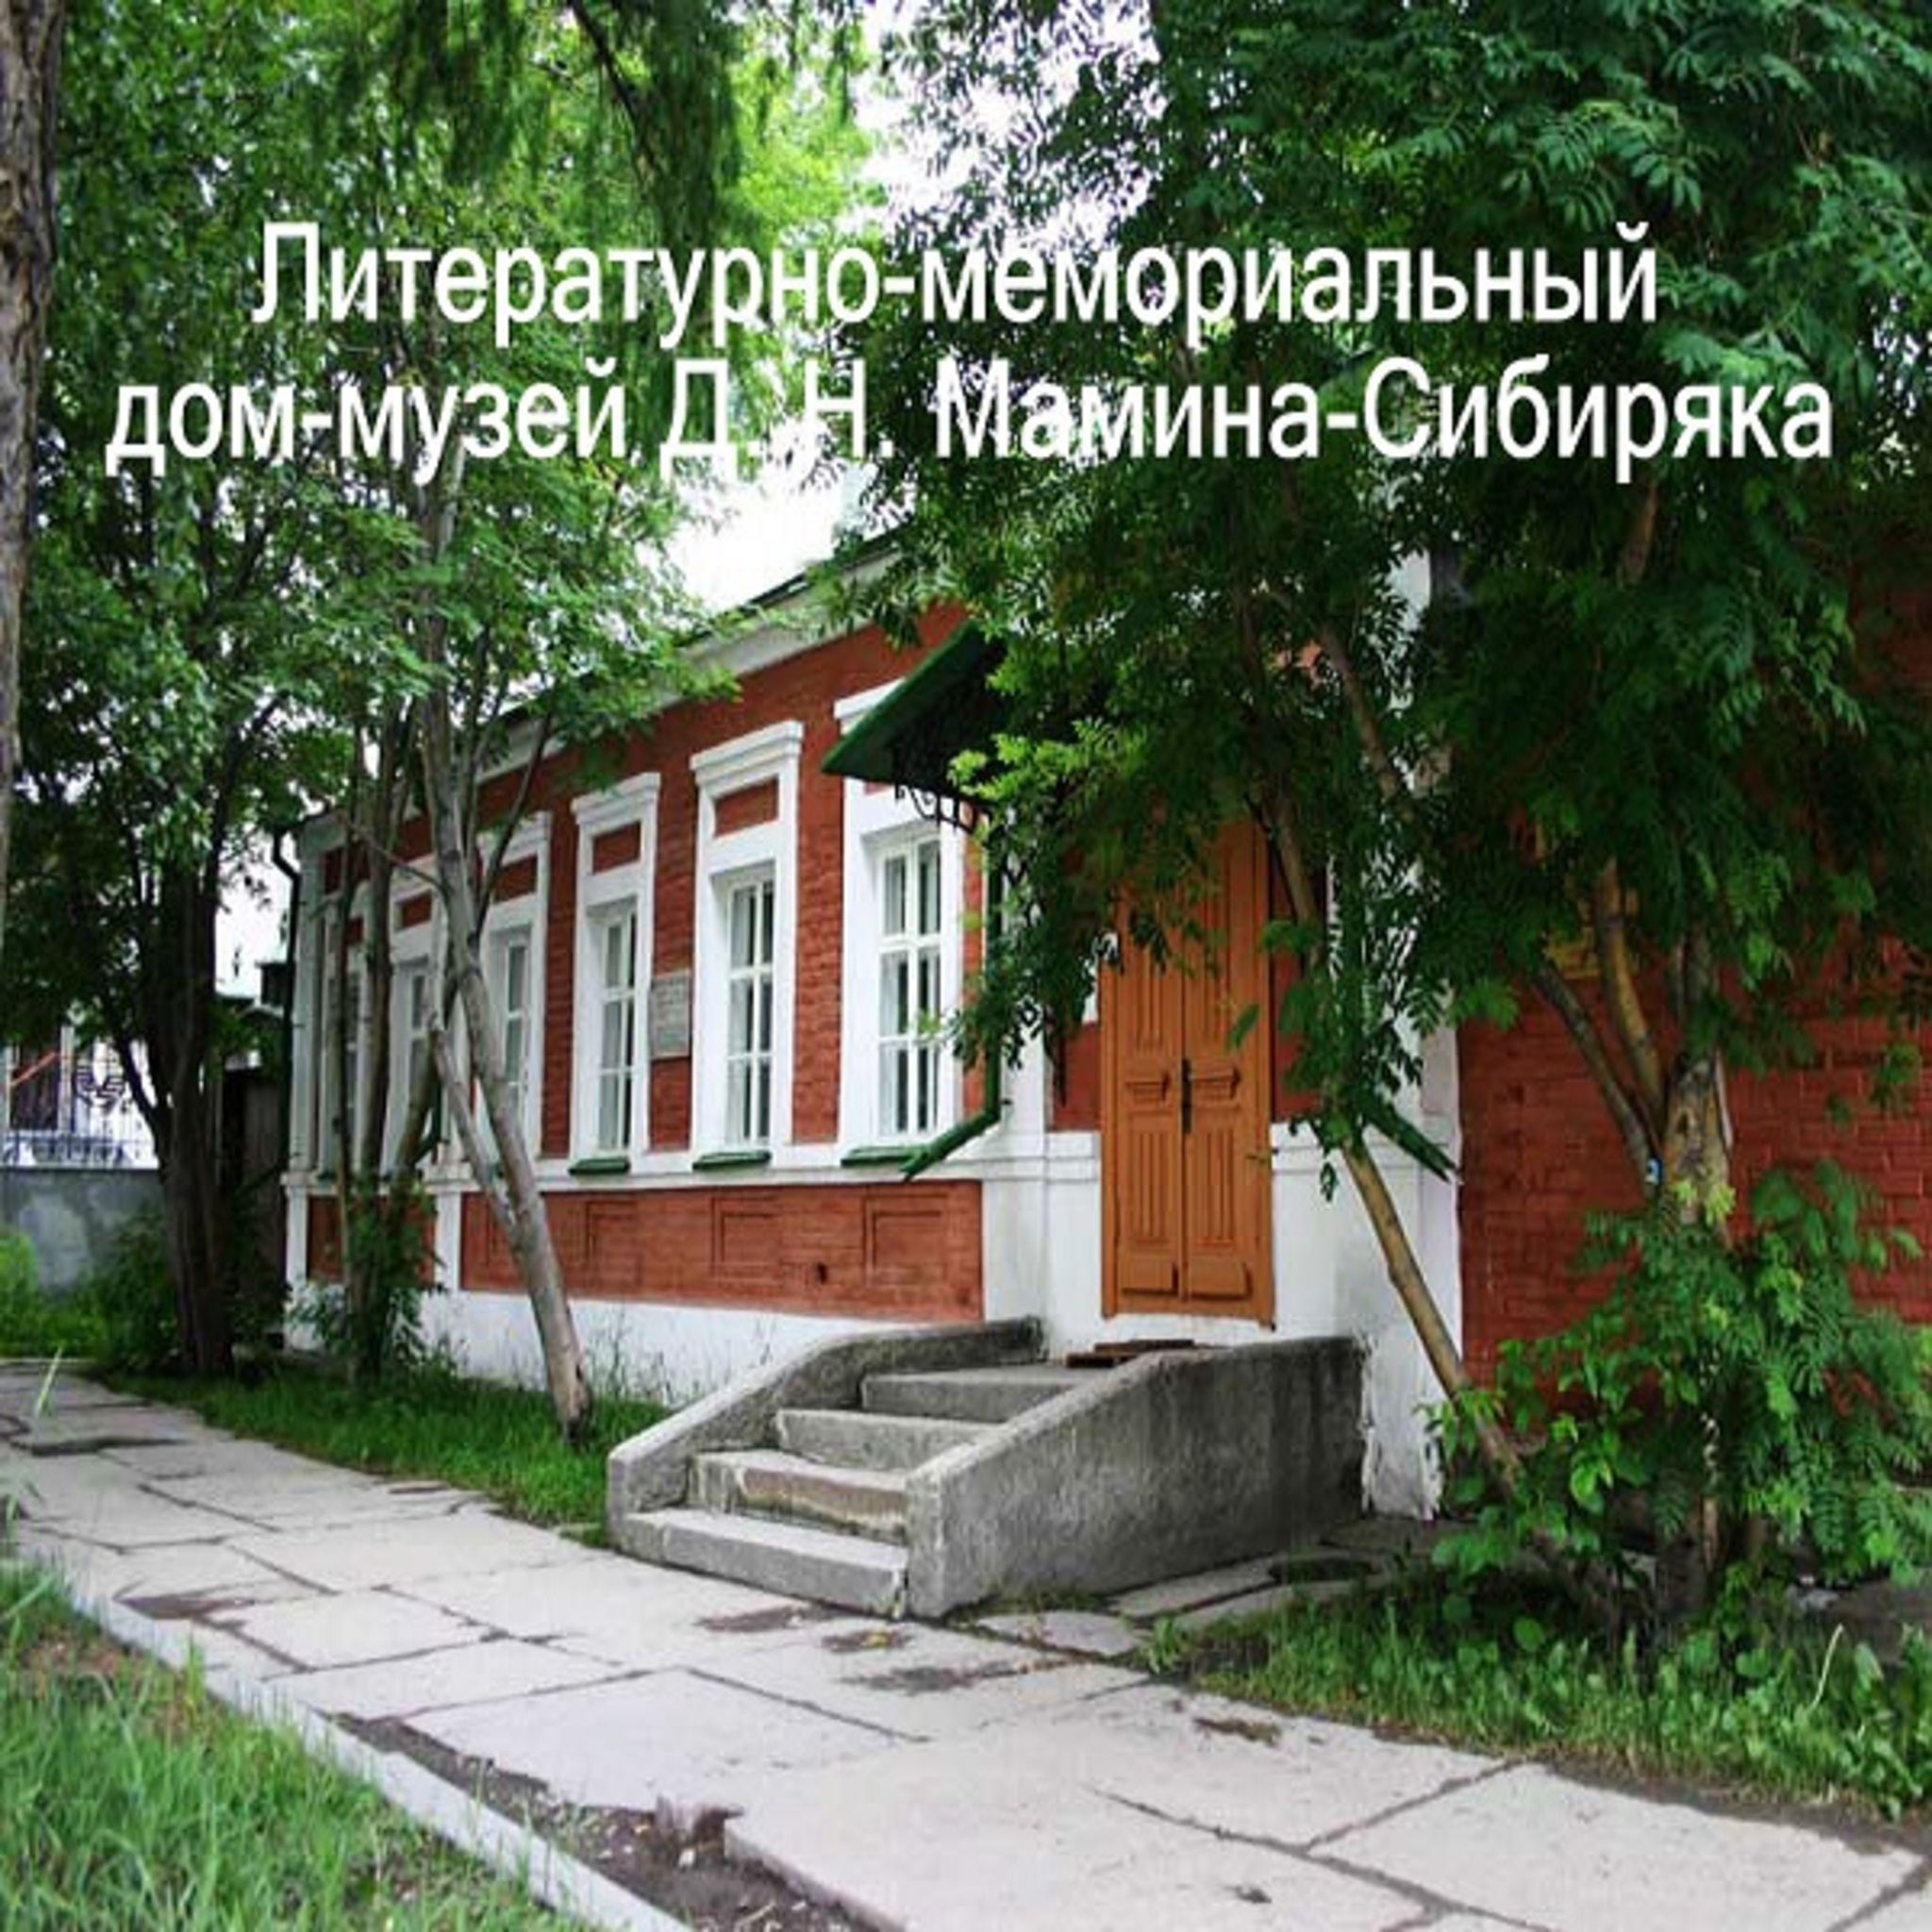 Literary-memorial house-museum of D. N. Mamin-Sibiryak